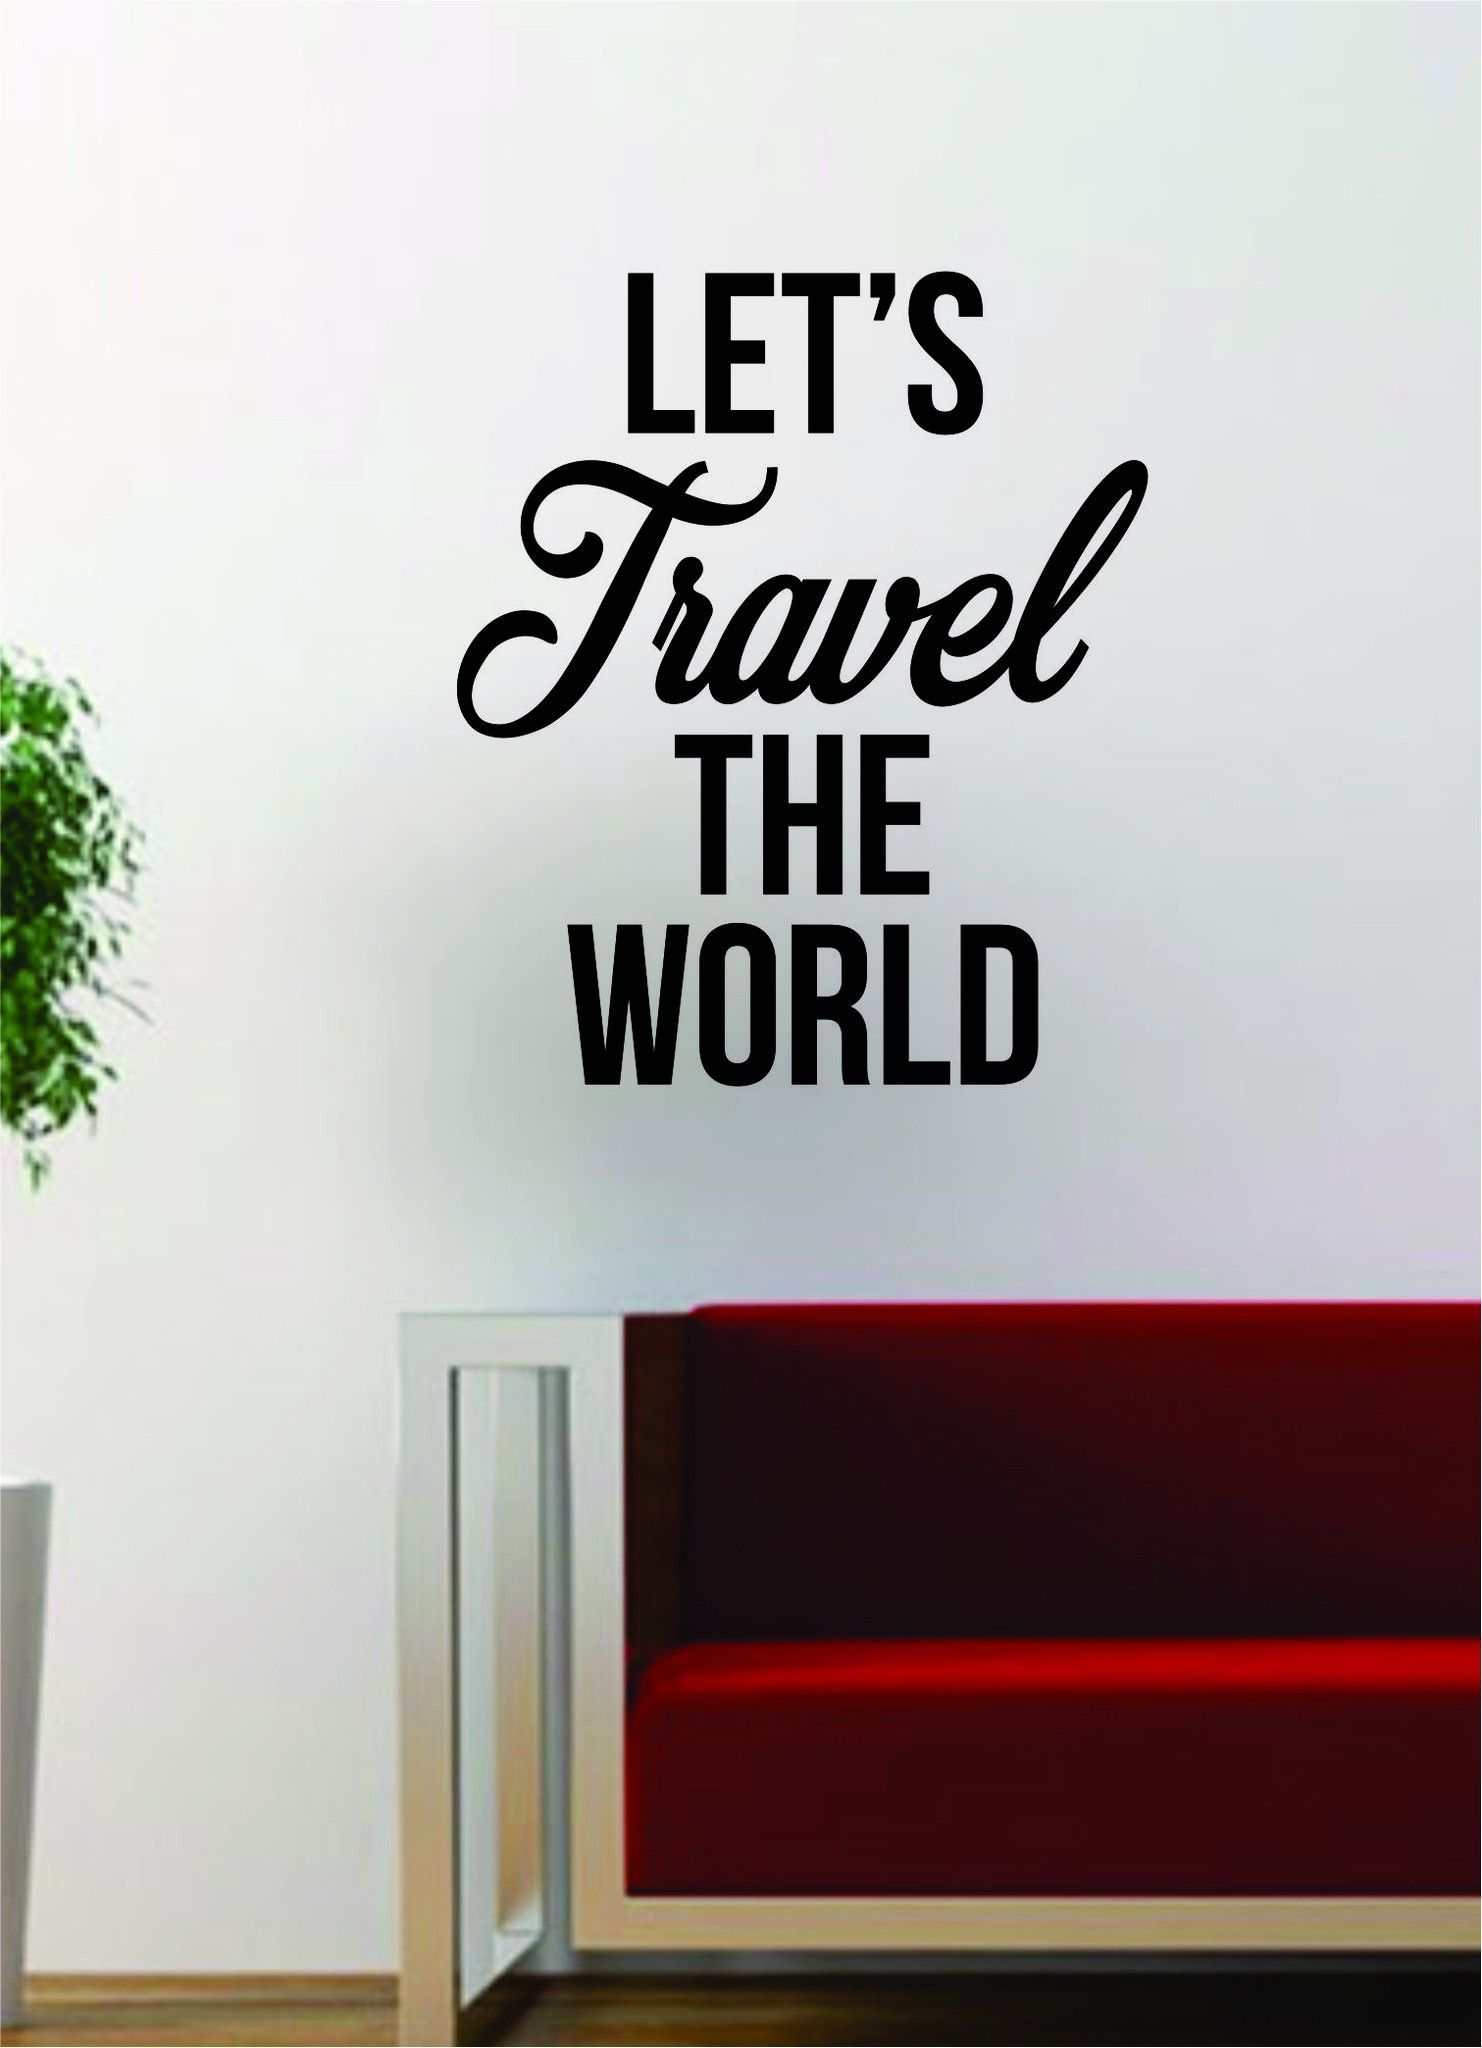 Lets Travel The World Quote Decal Sticker Wall Vinyl Art Words Decor